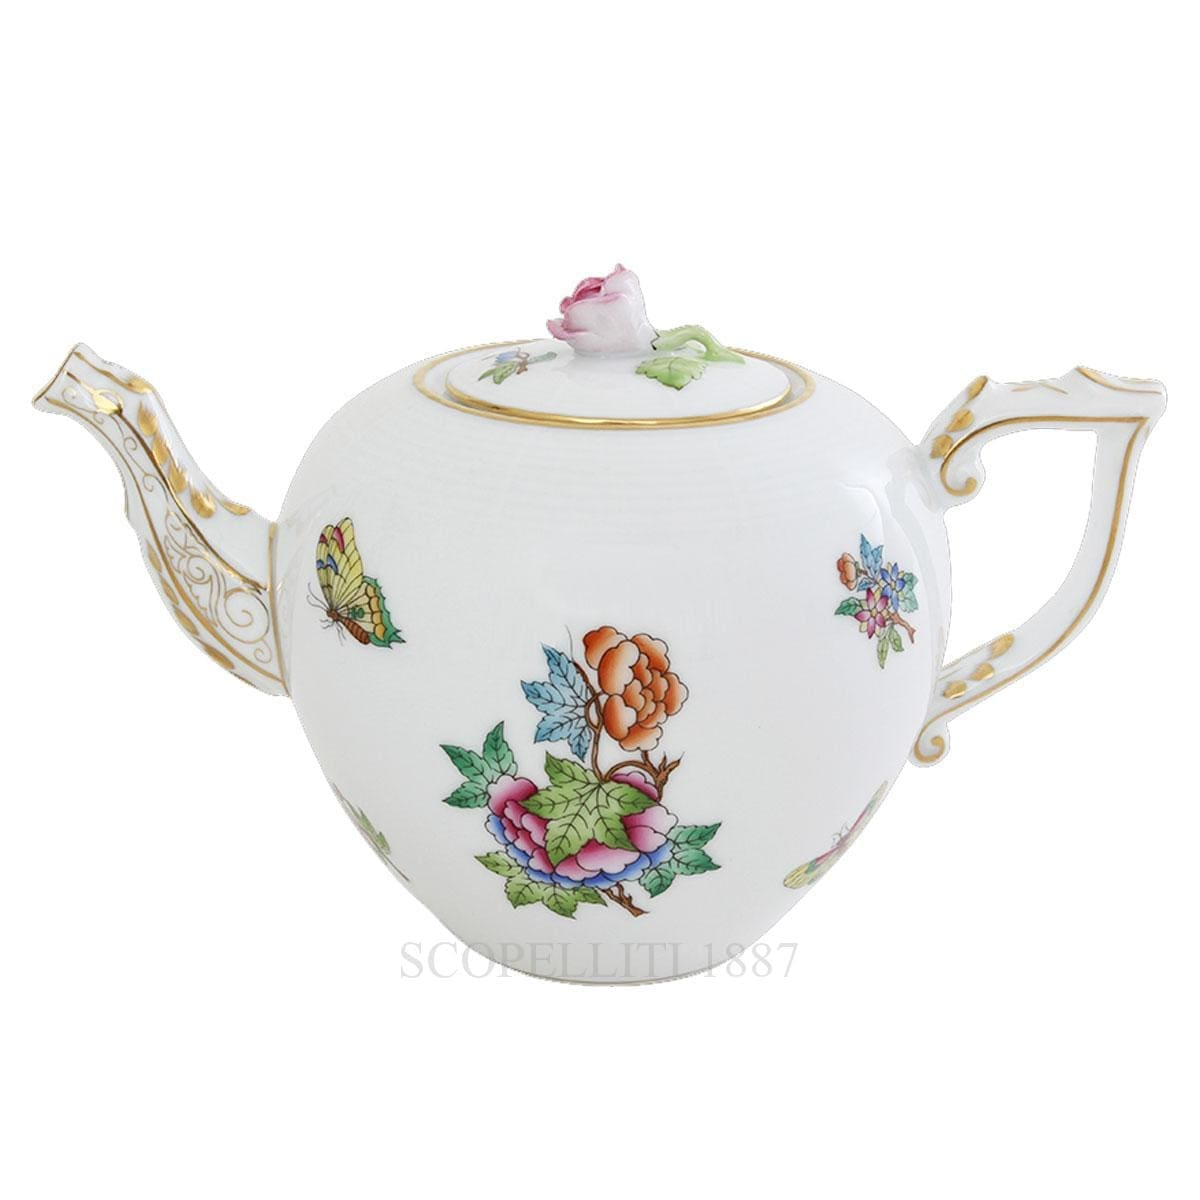 Herend Queen Victoria Teapot with Rose 604-0-09 VA